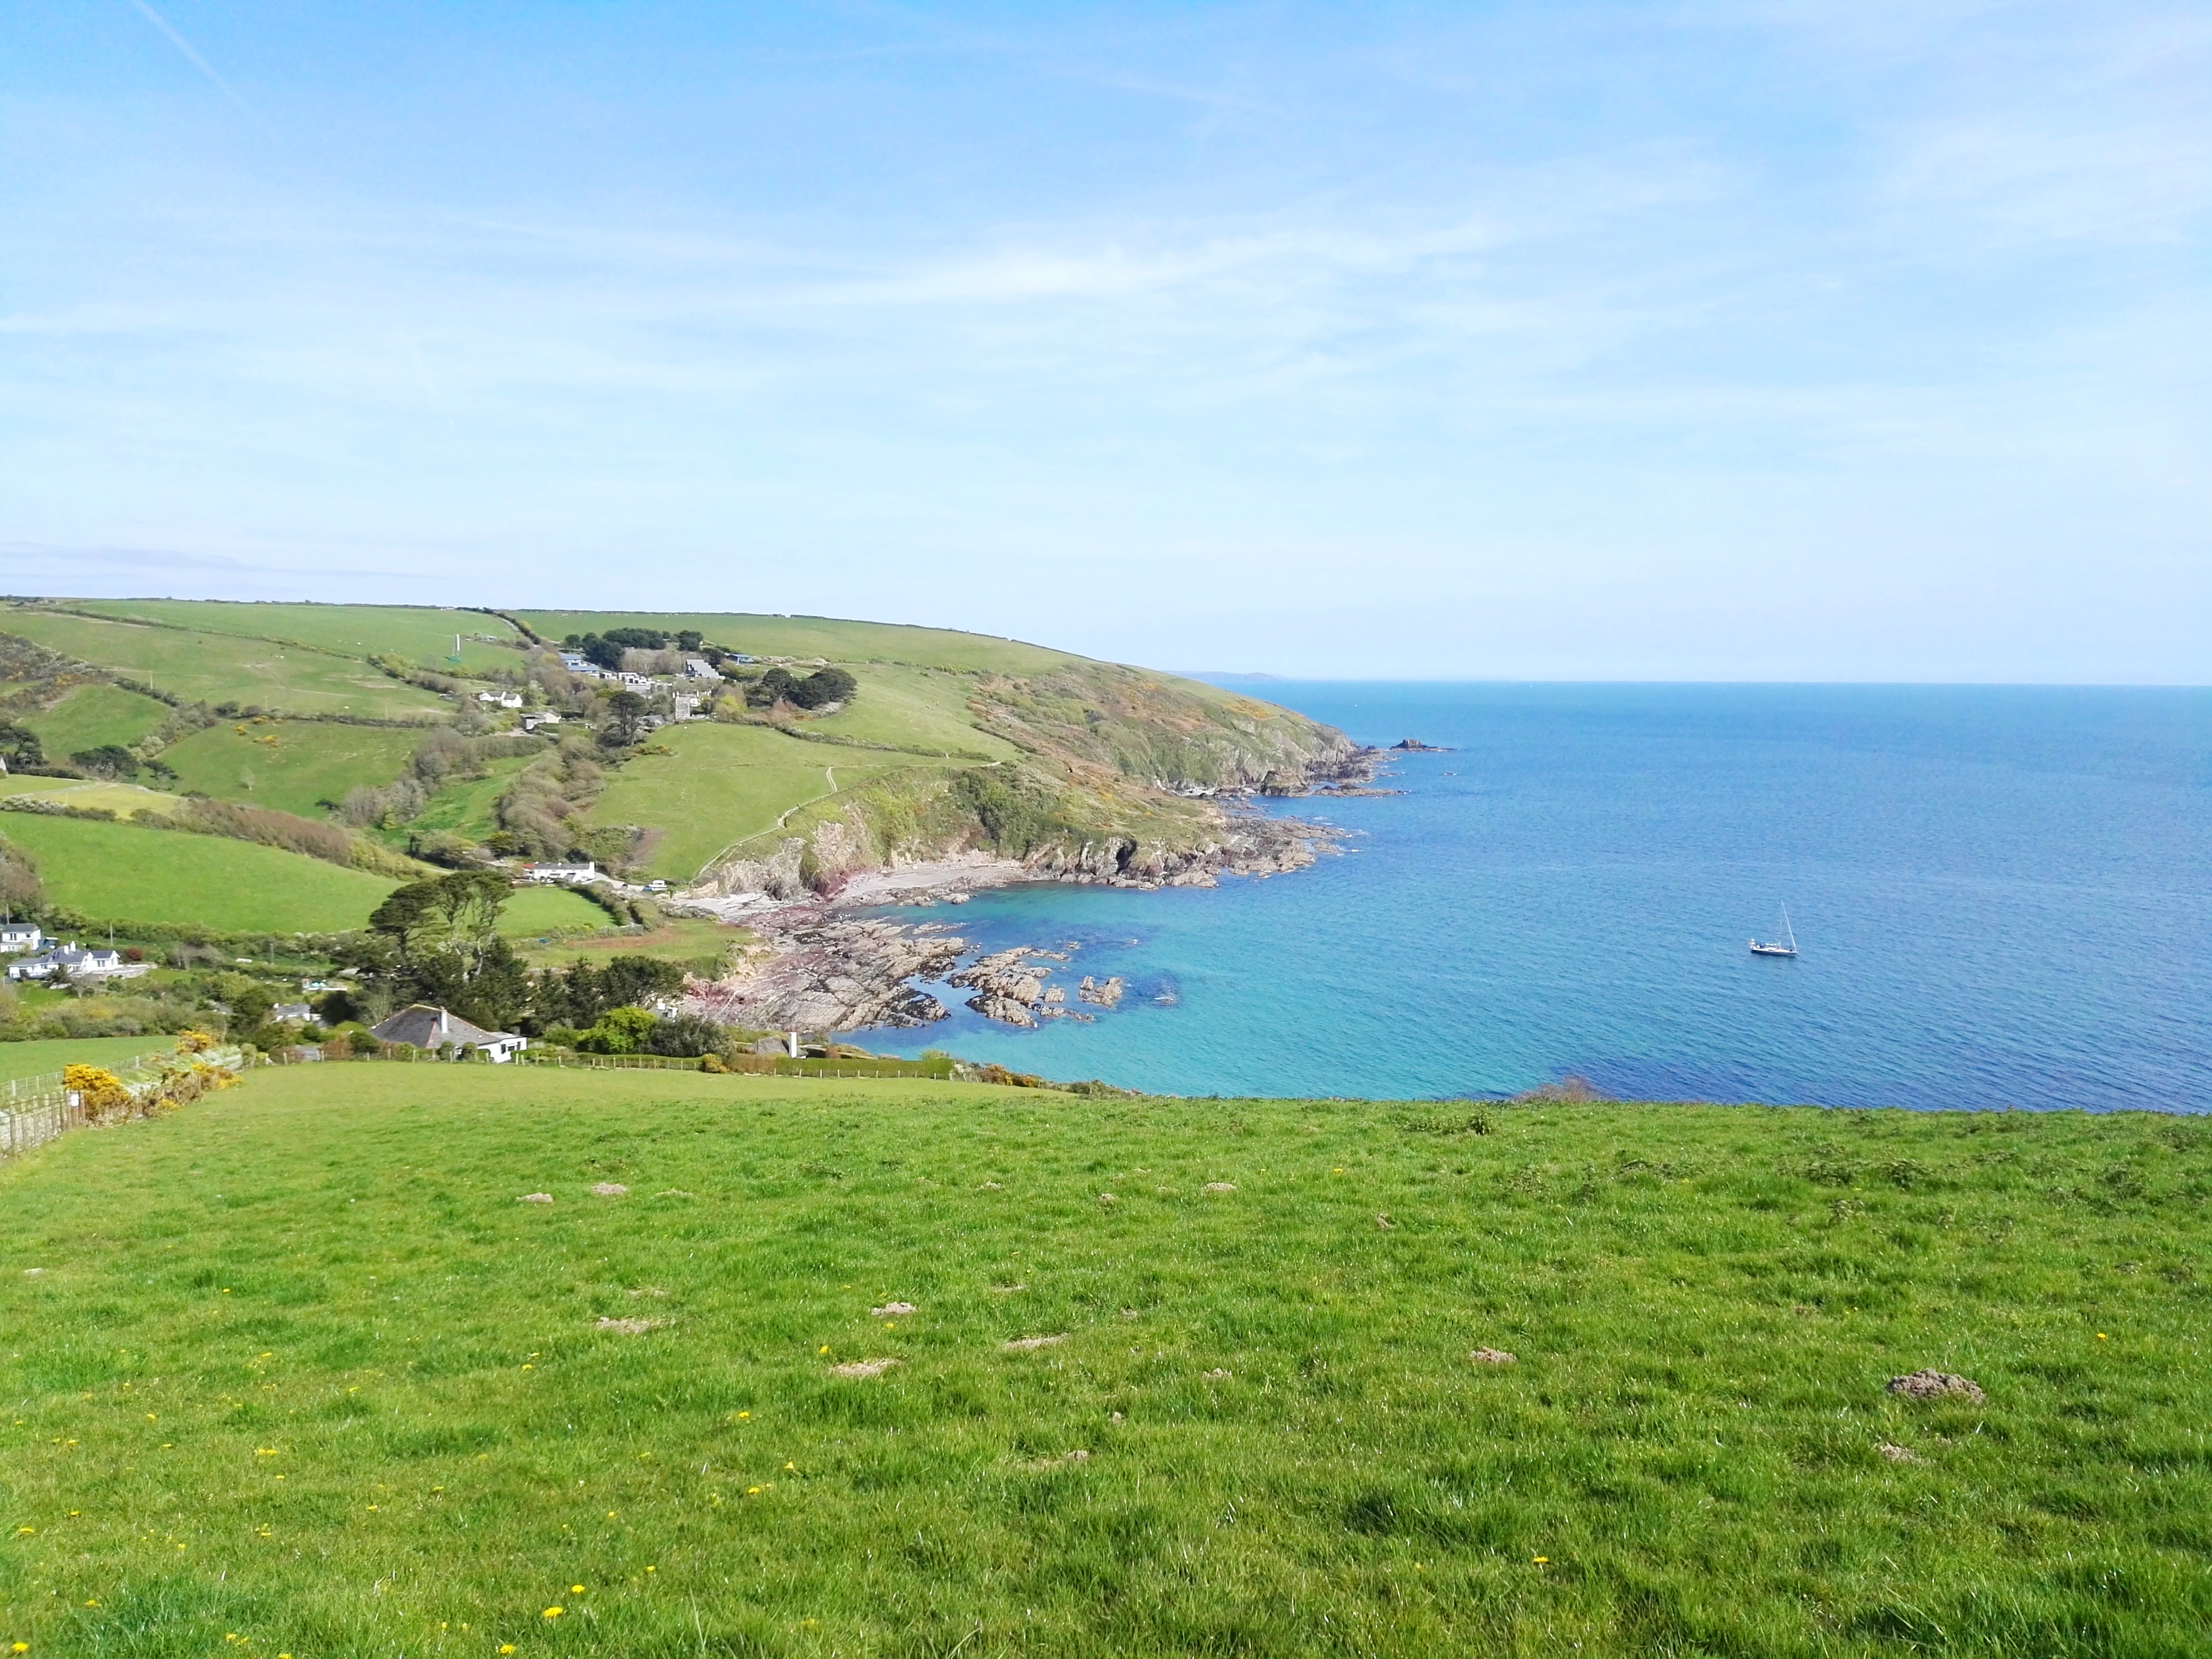 Looking back to Talland from the South West Coast Path